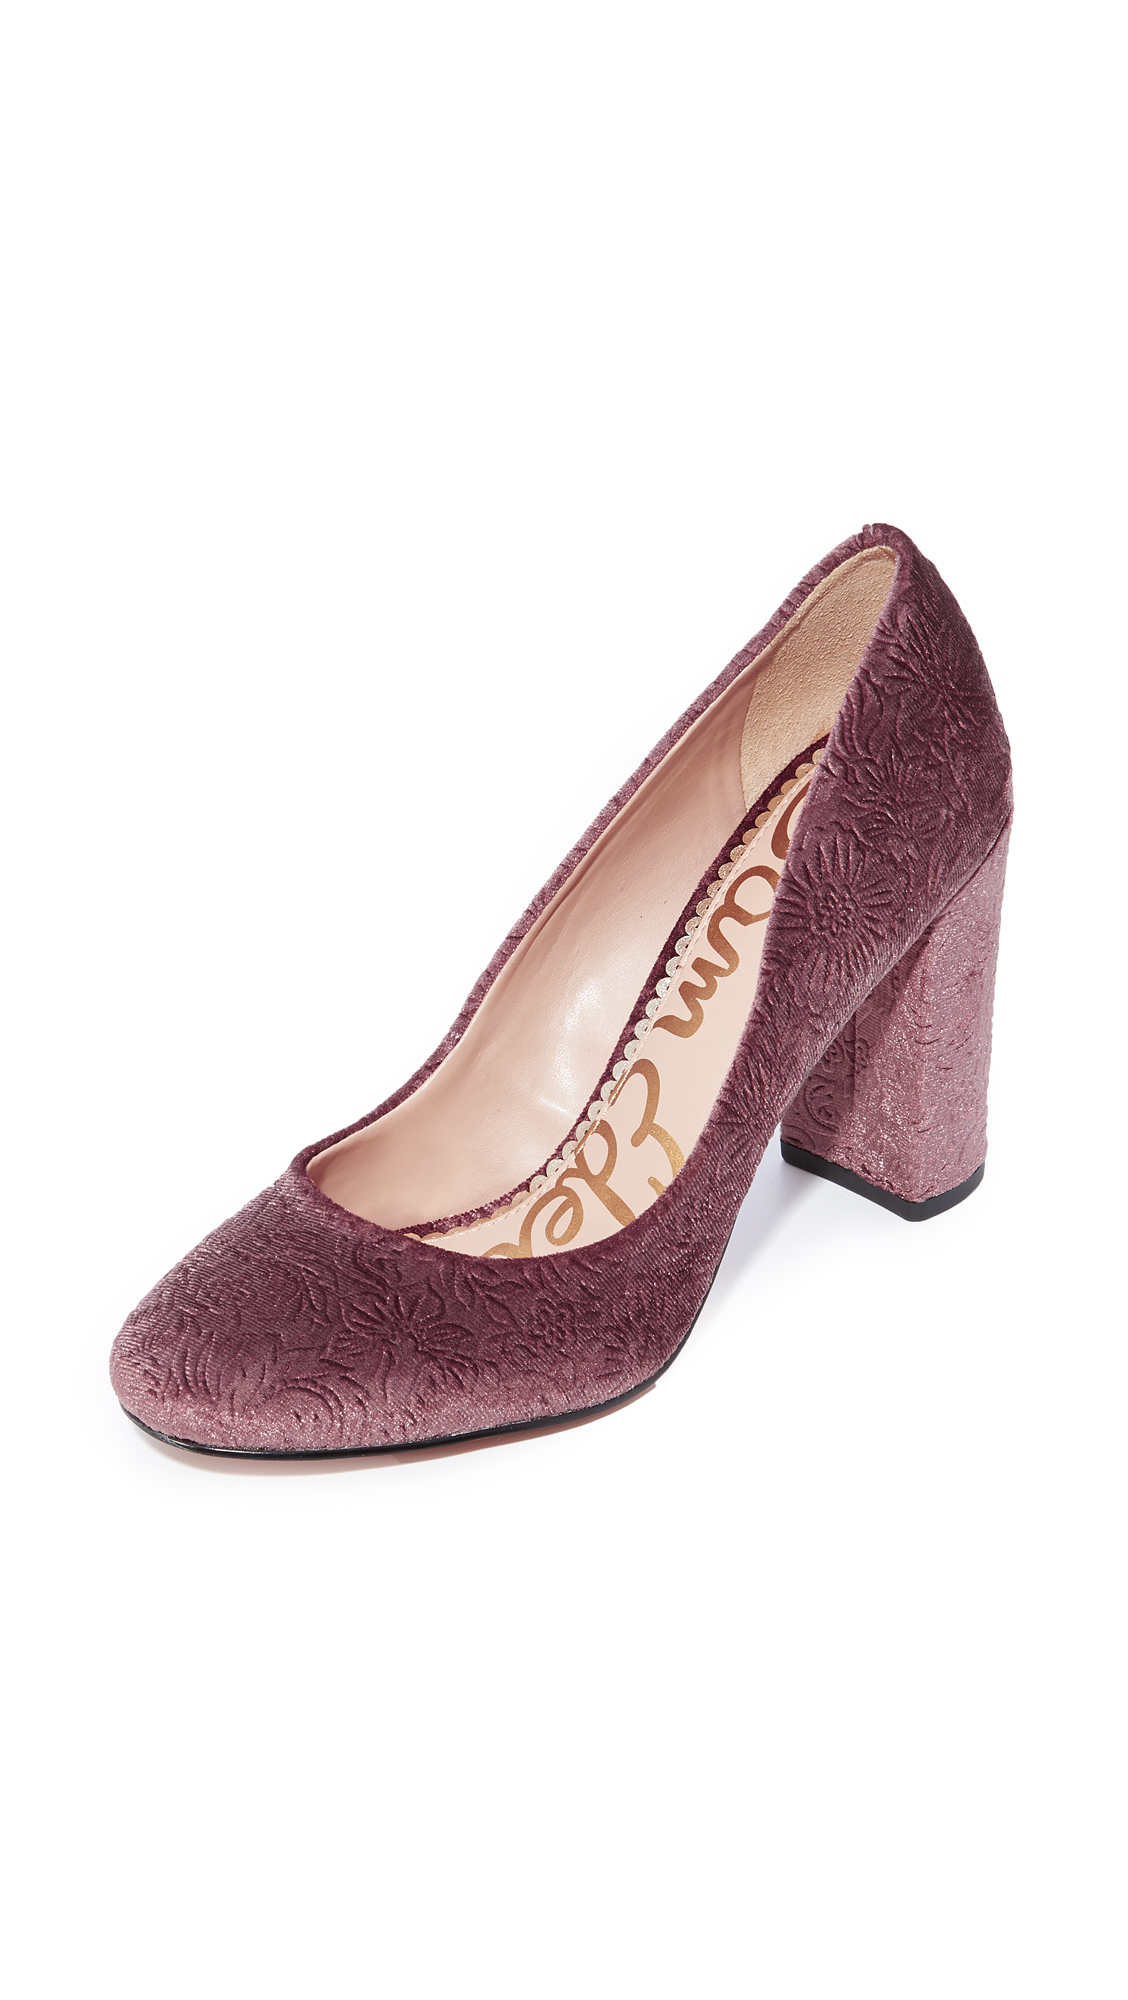 Sam Edelman Stillson Pumps - Mauve Wine